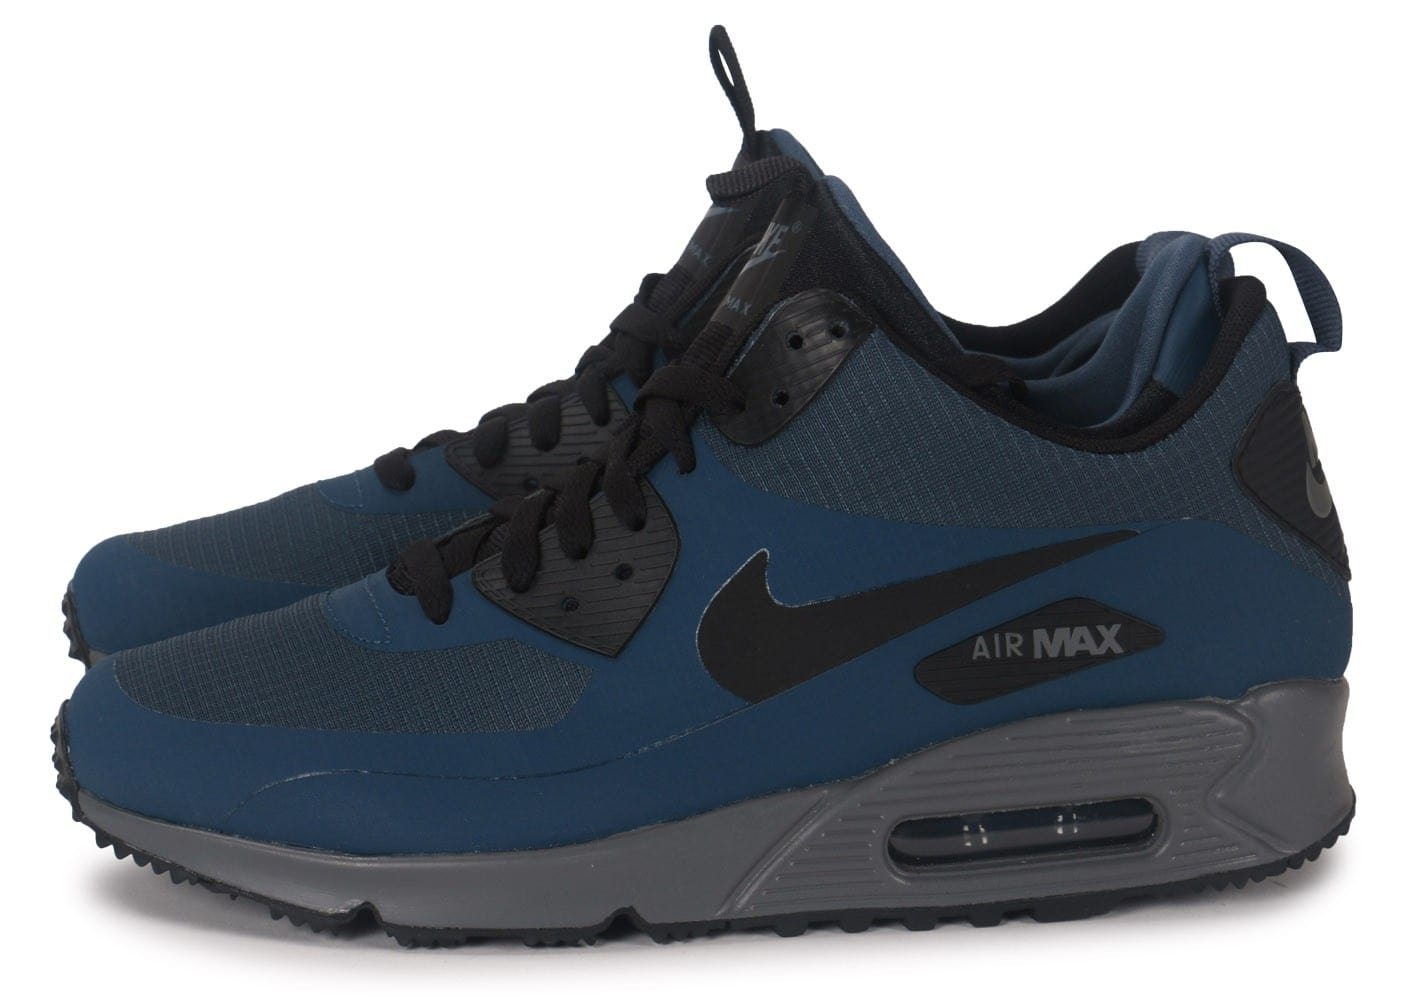 authentic nike air max 90 mid winter bleu fd8d8 8daf4